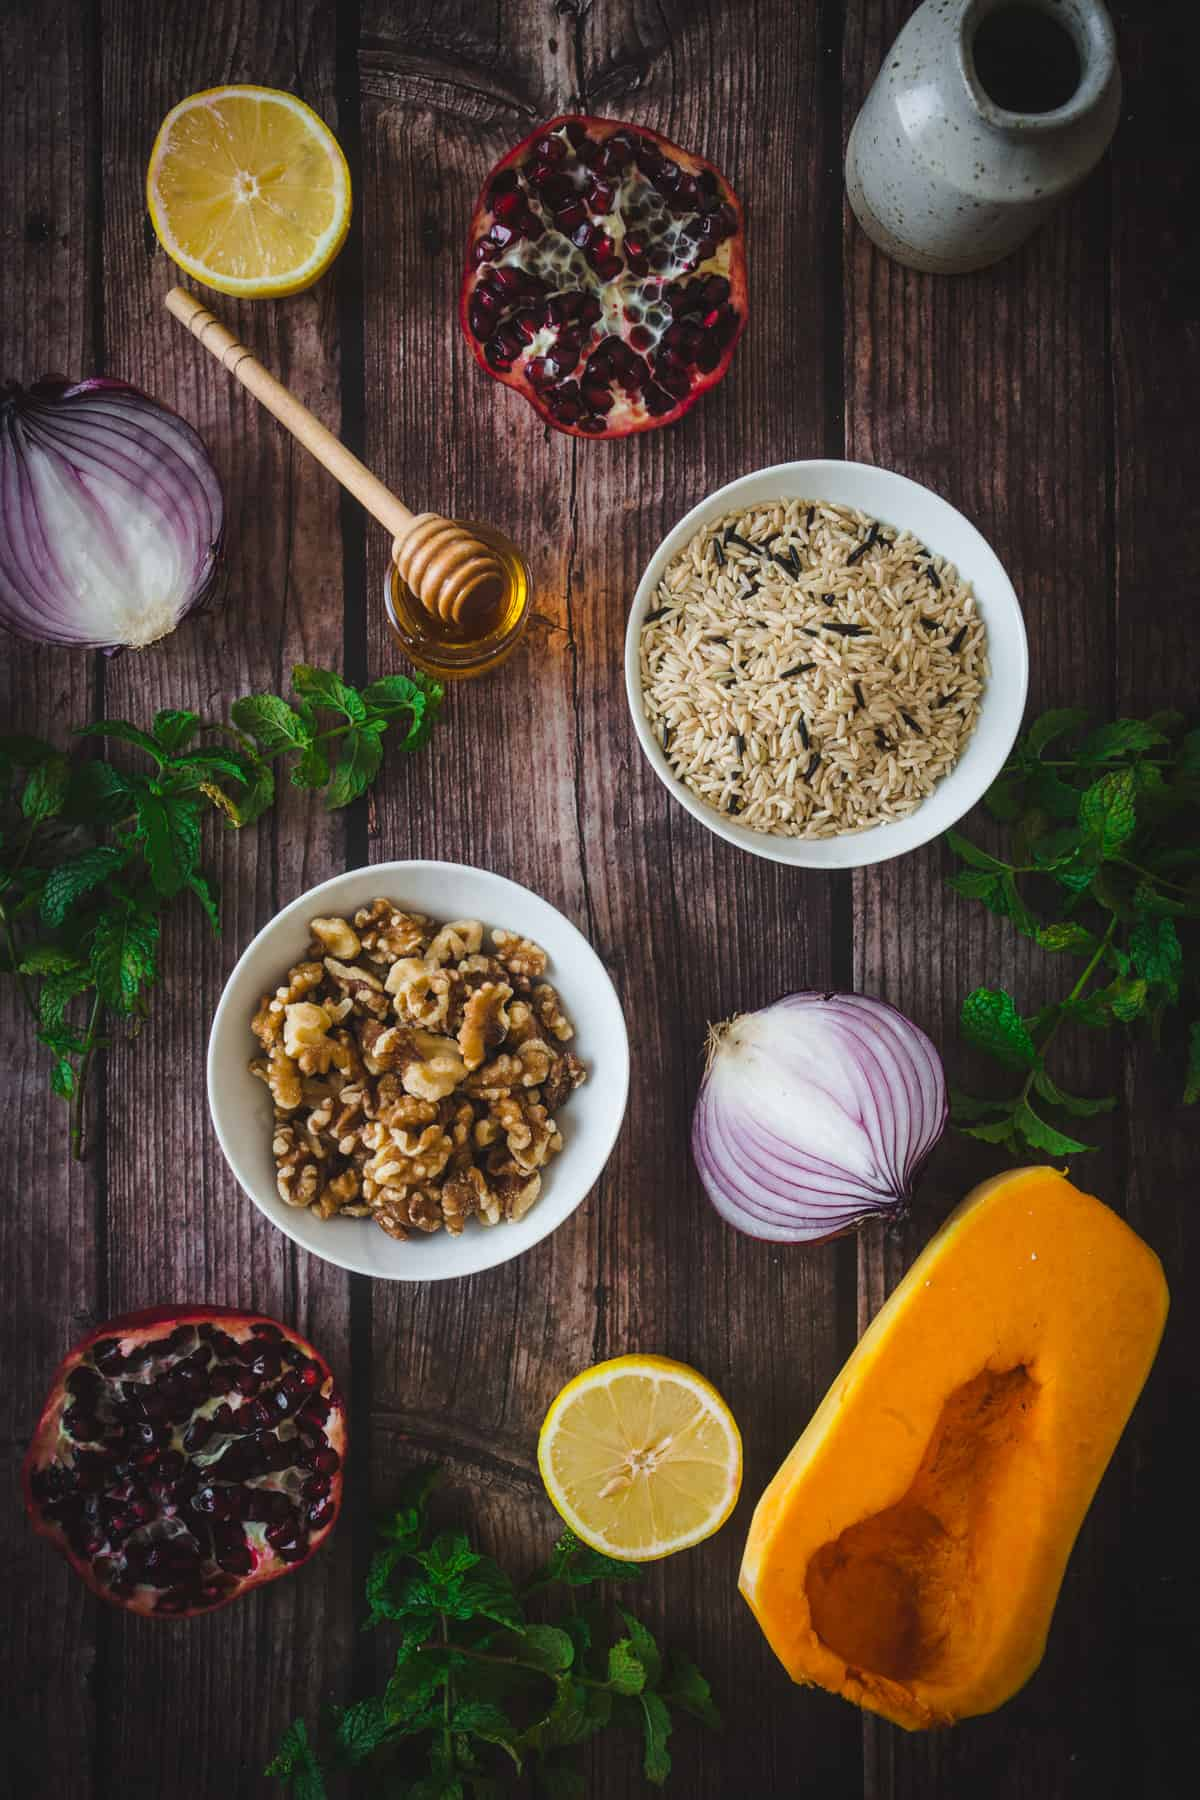 ingredients for wild rice pilaf